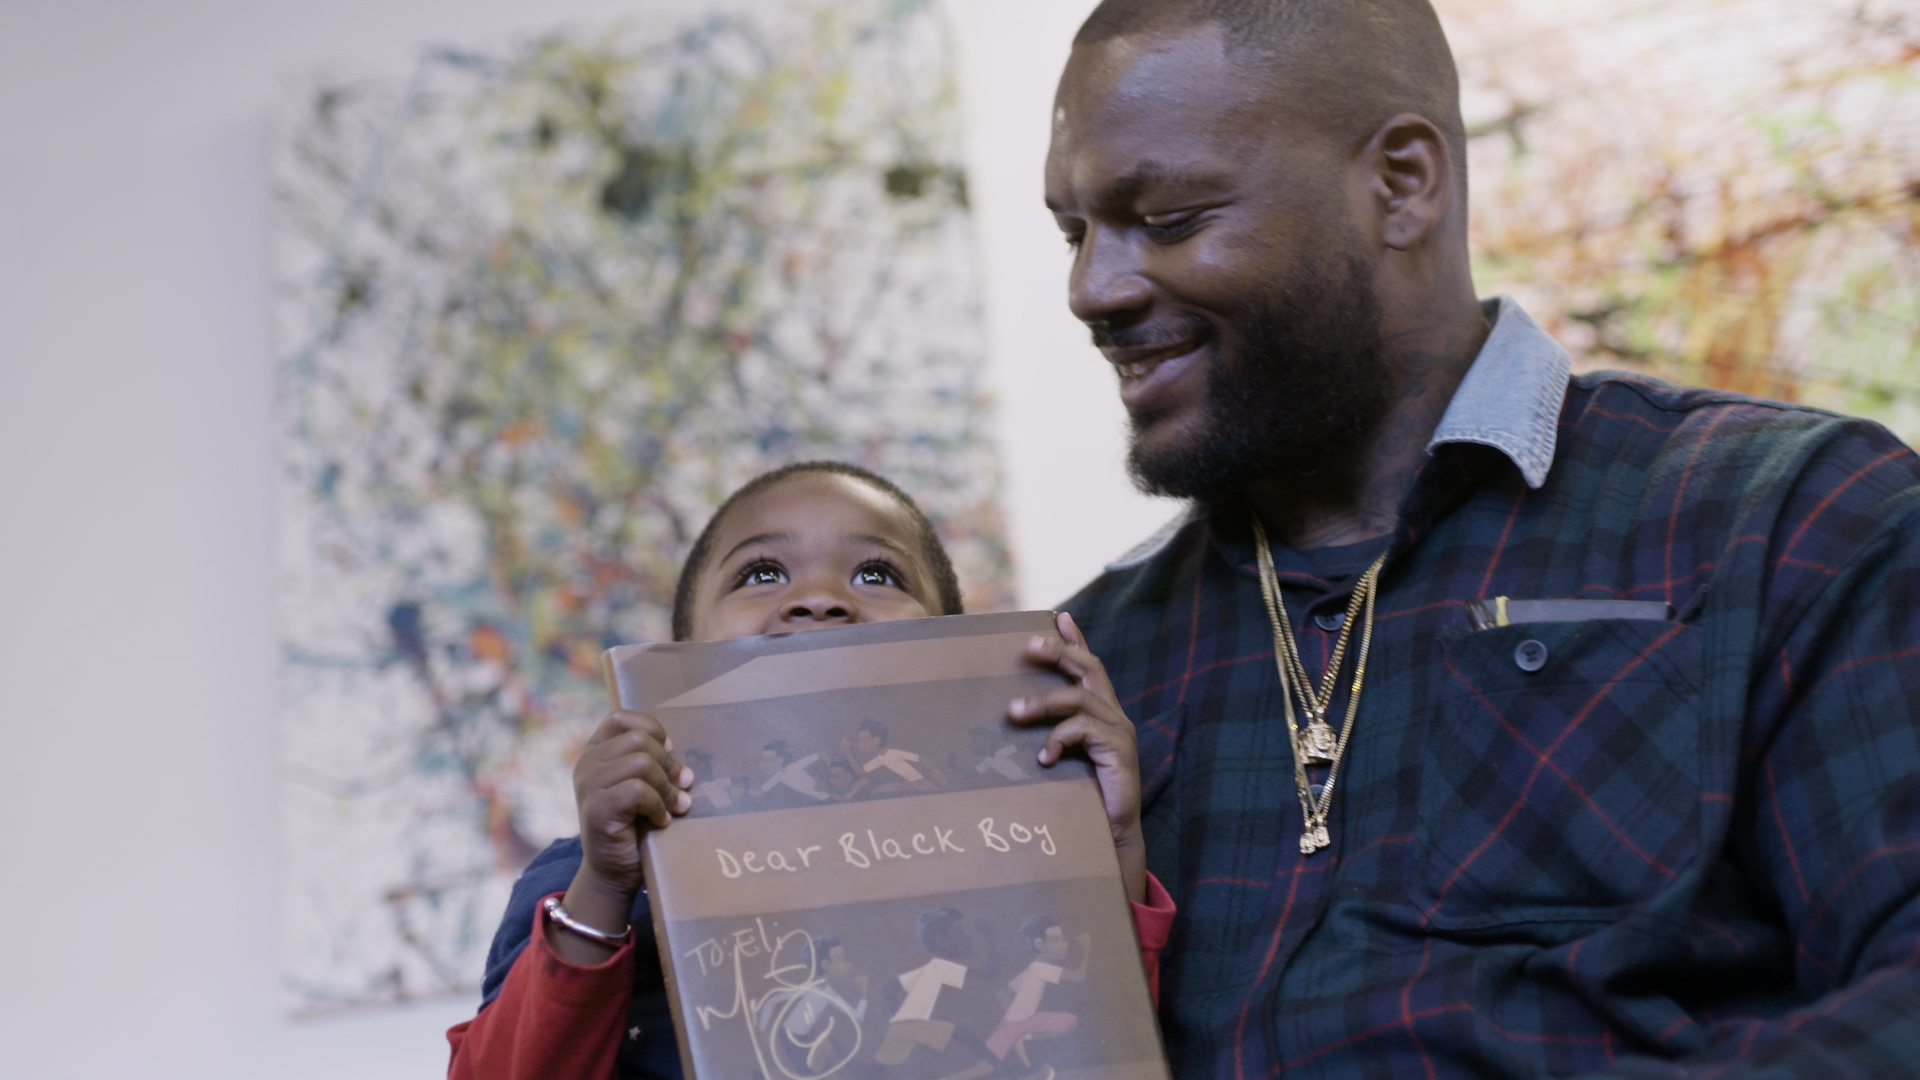 Martellus Bennett pens a personal message with 'Dear Black Boy'